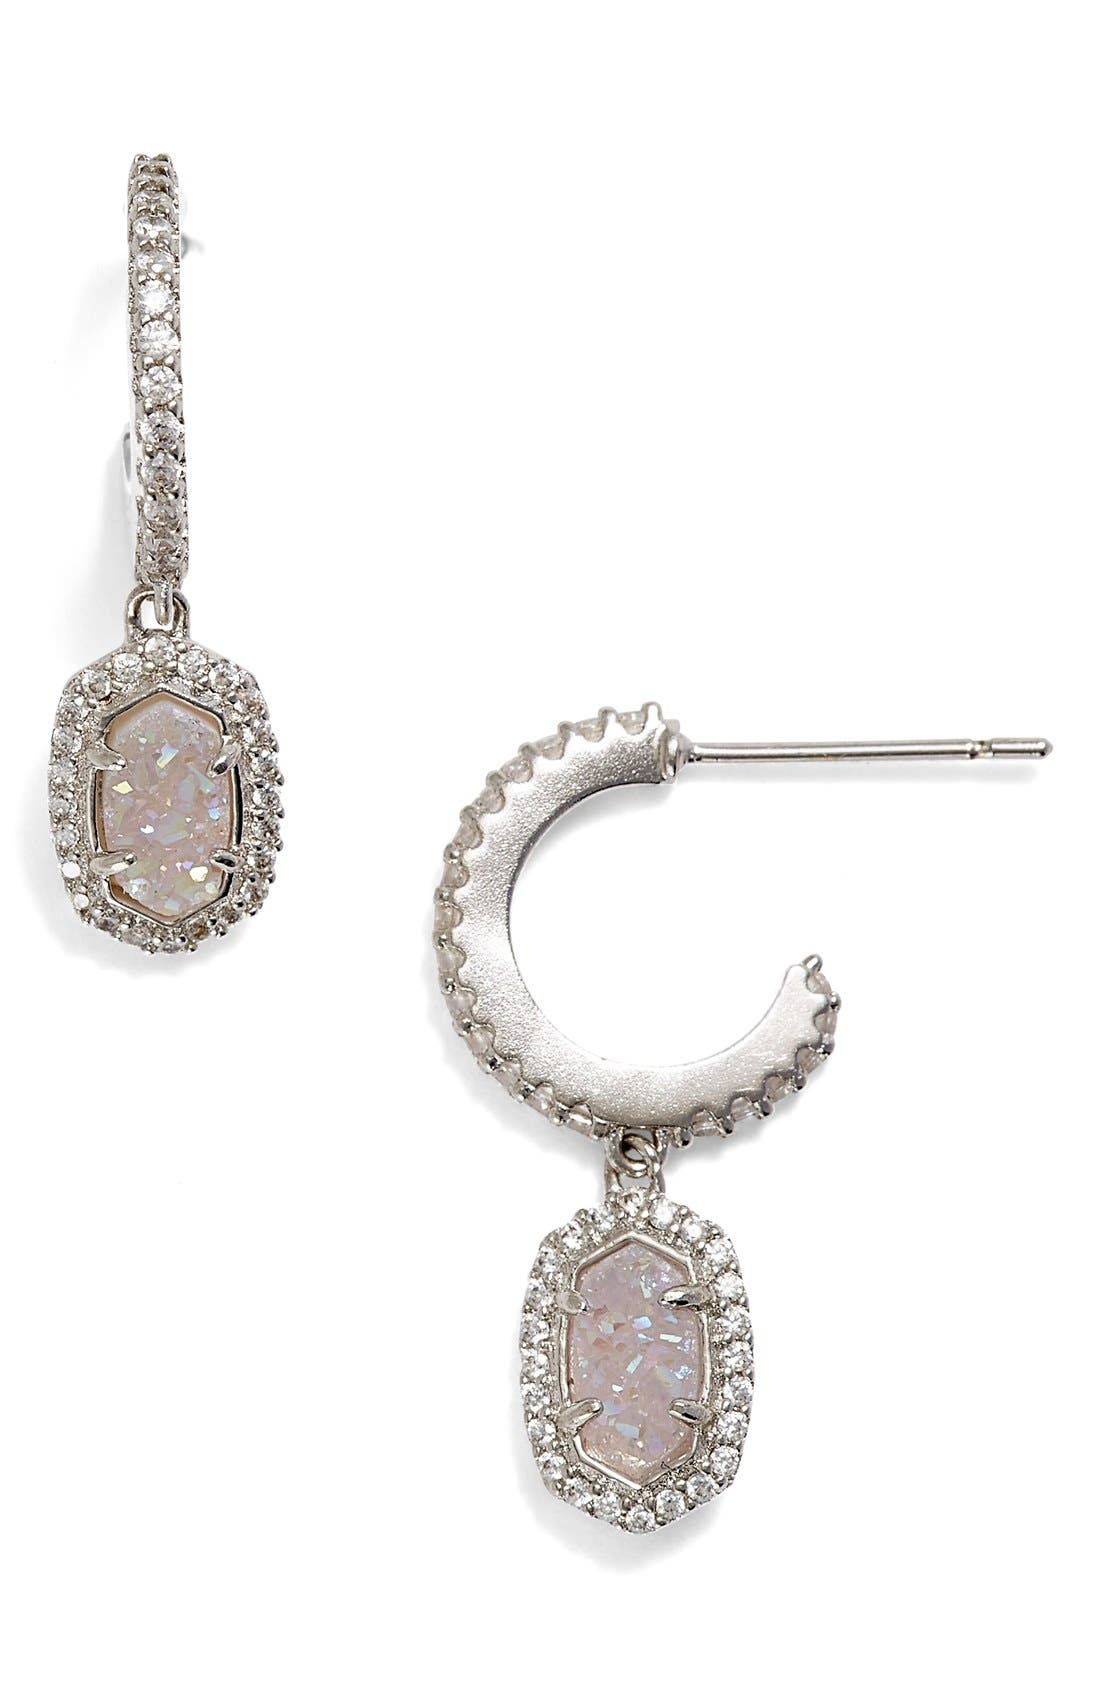 'Cale' Hoop Earrings,                         Main,                         color, Silver Iridescent Drusy